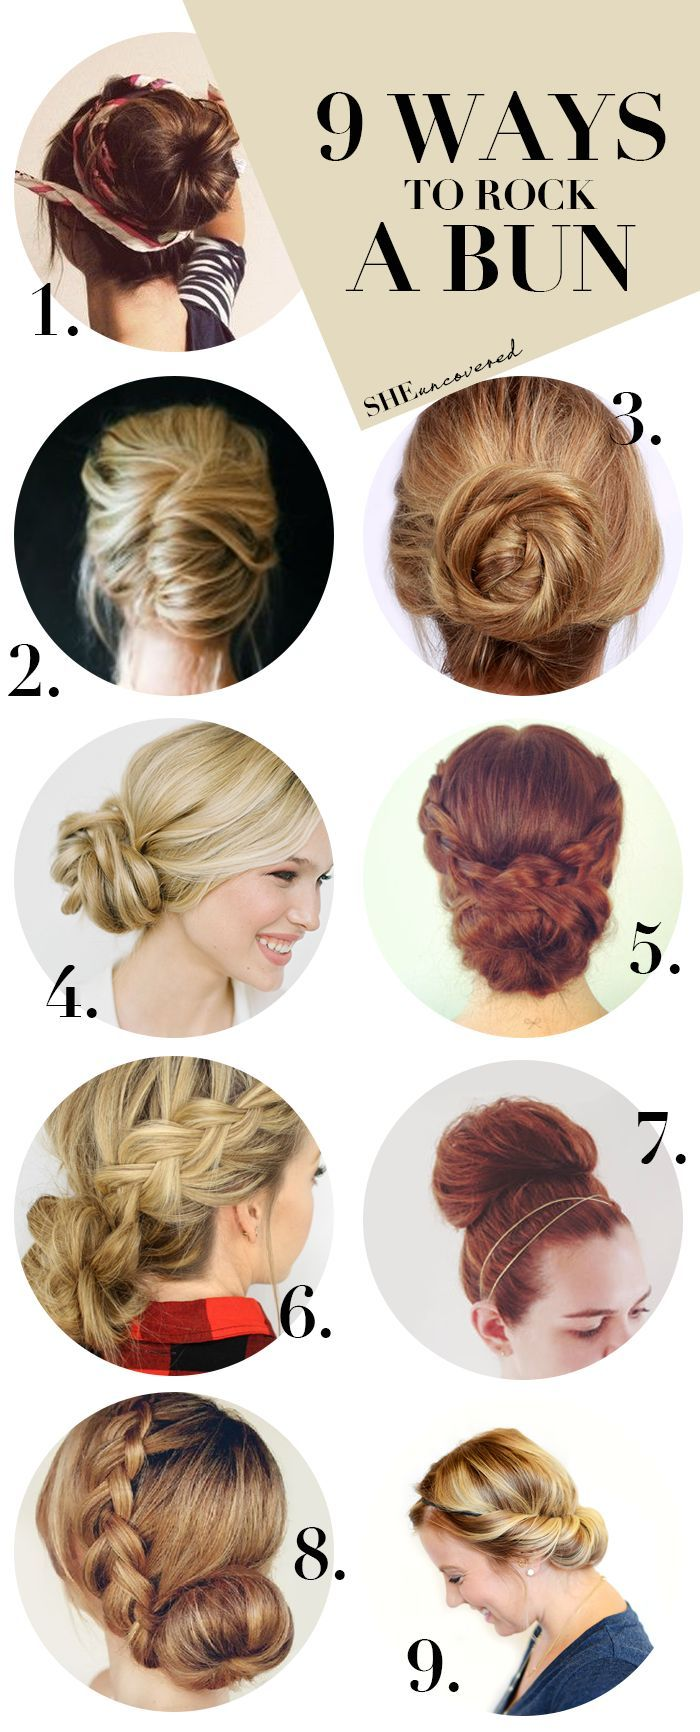 Marvelous 1000 Images About Work Hair Styles On Pinterest Your Hair My Short Hairstyles Gunalazisus